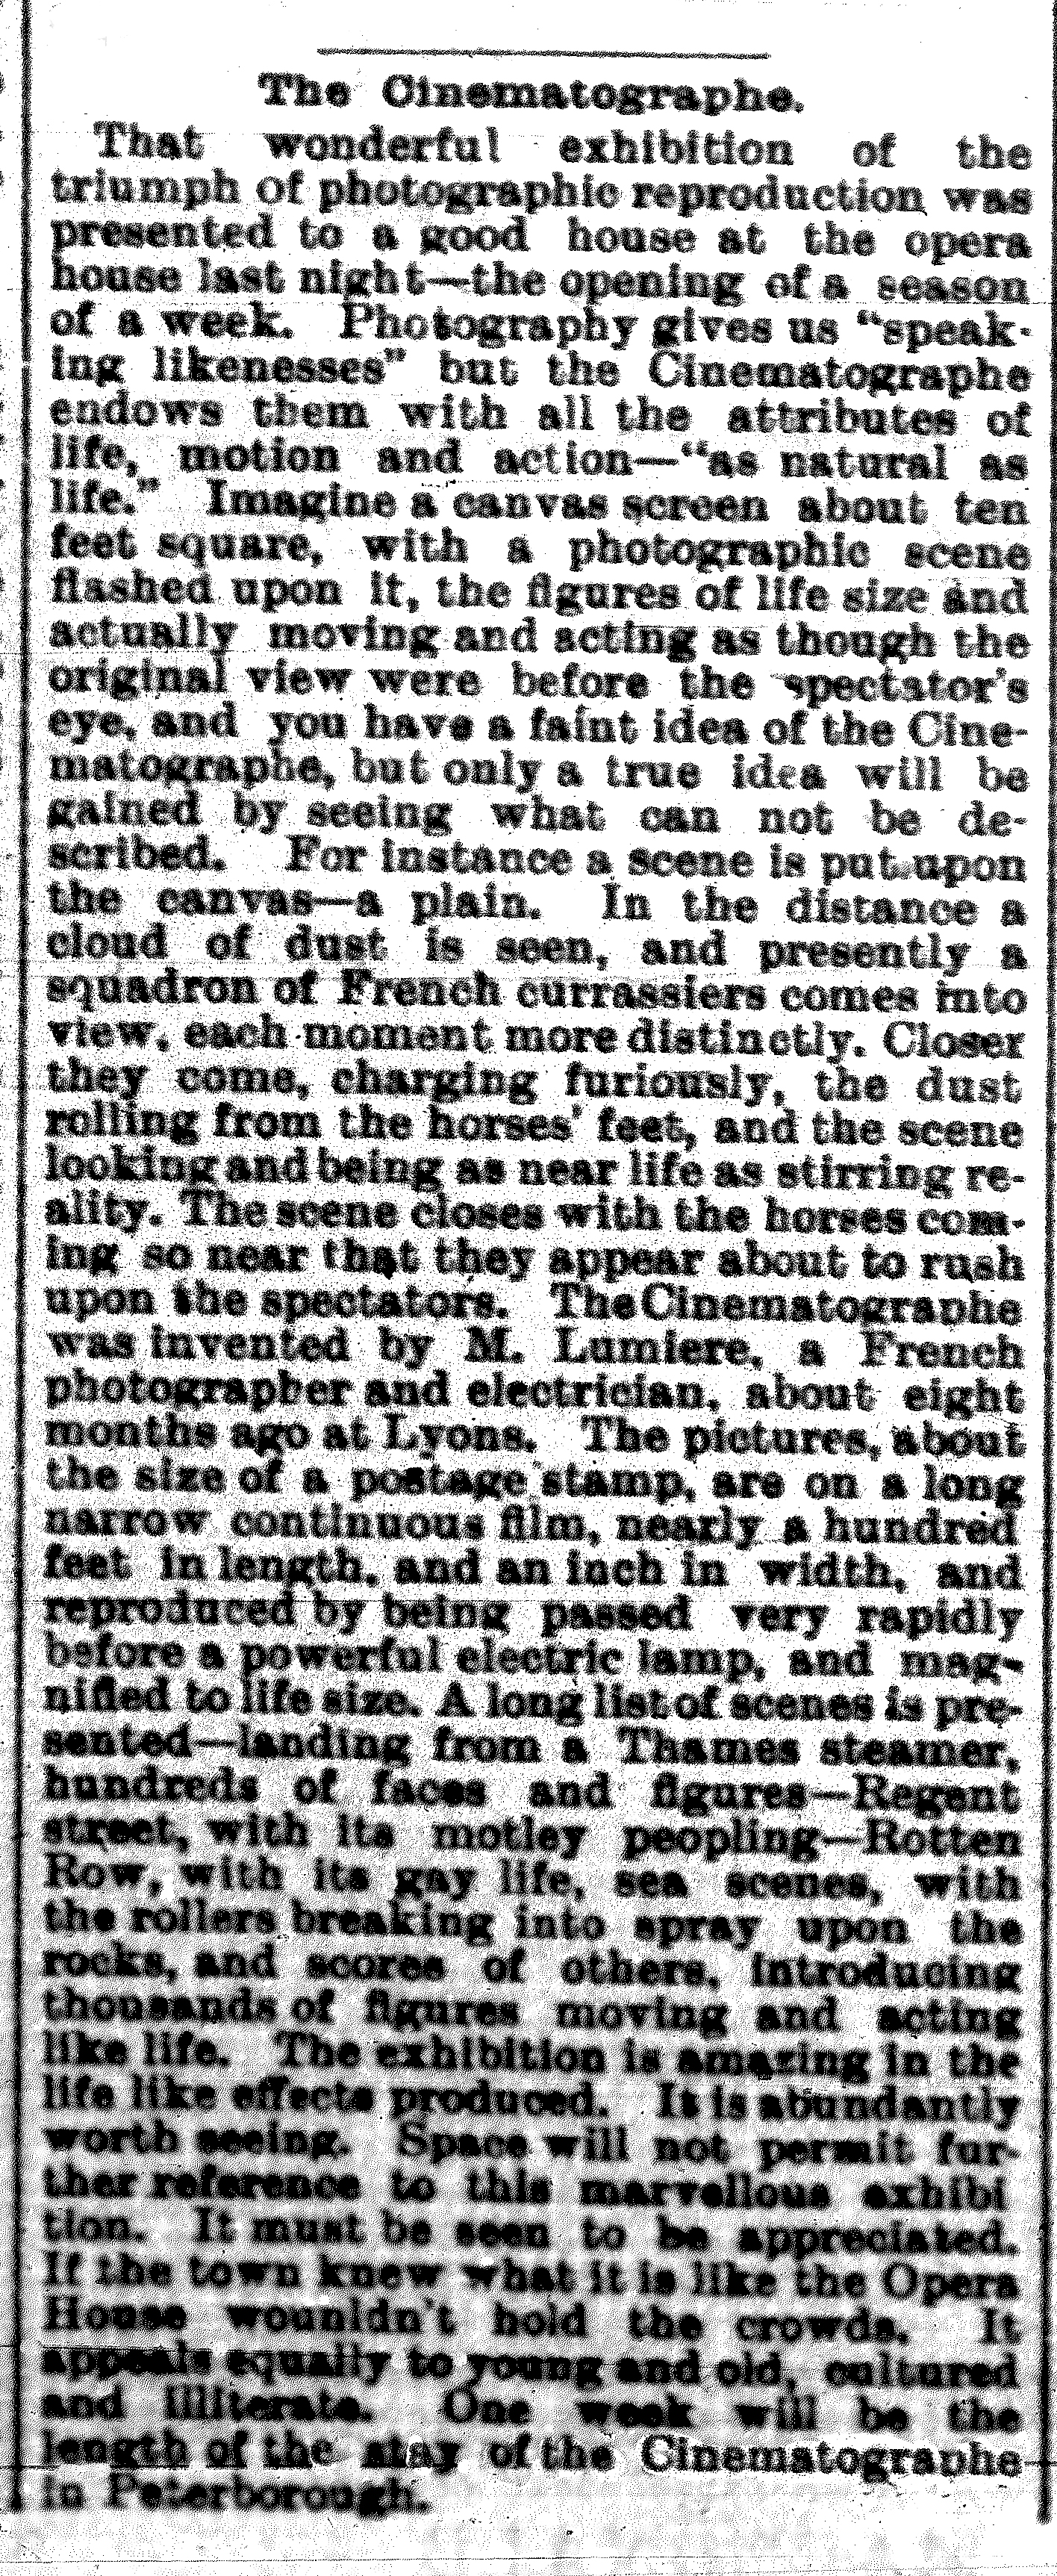 Evening Examiner, Jan. 22,1897. The motion pictures arrive at Peterborough's Bradburn's Opera House.